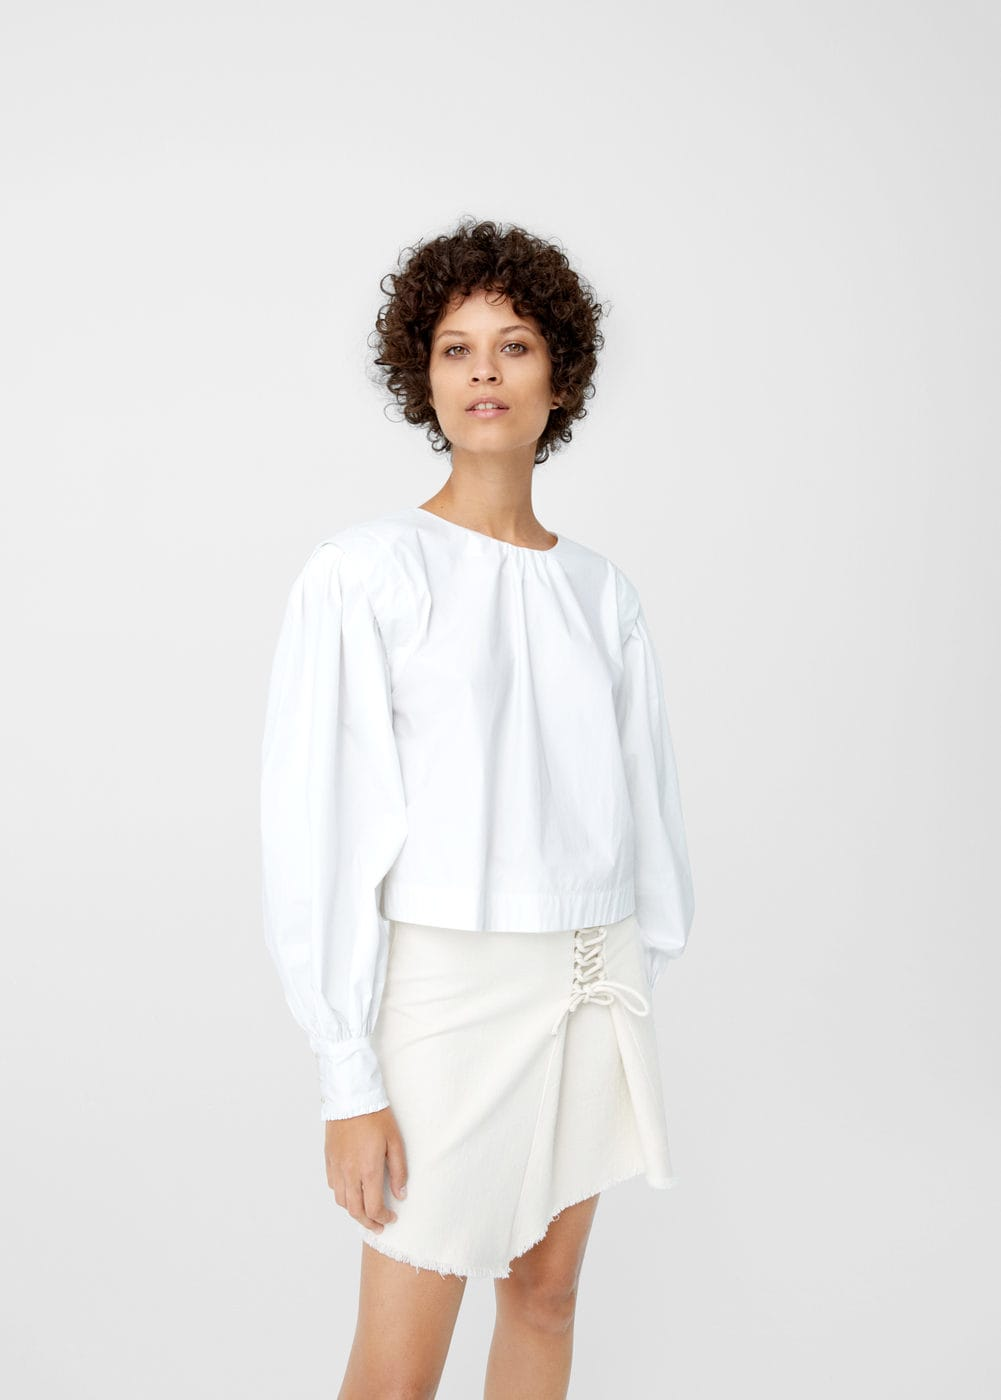 Mango Collection New Sustainable Fast Fashion Line 0526580a5